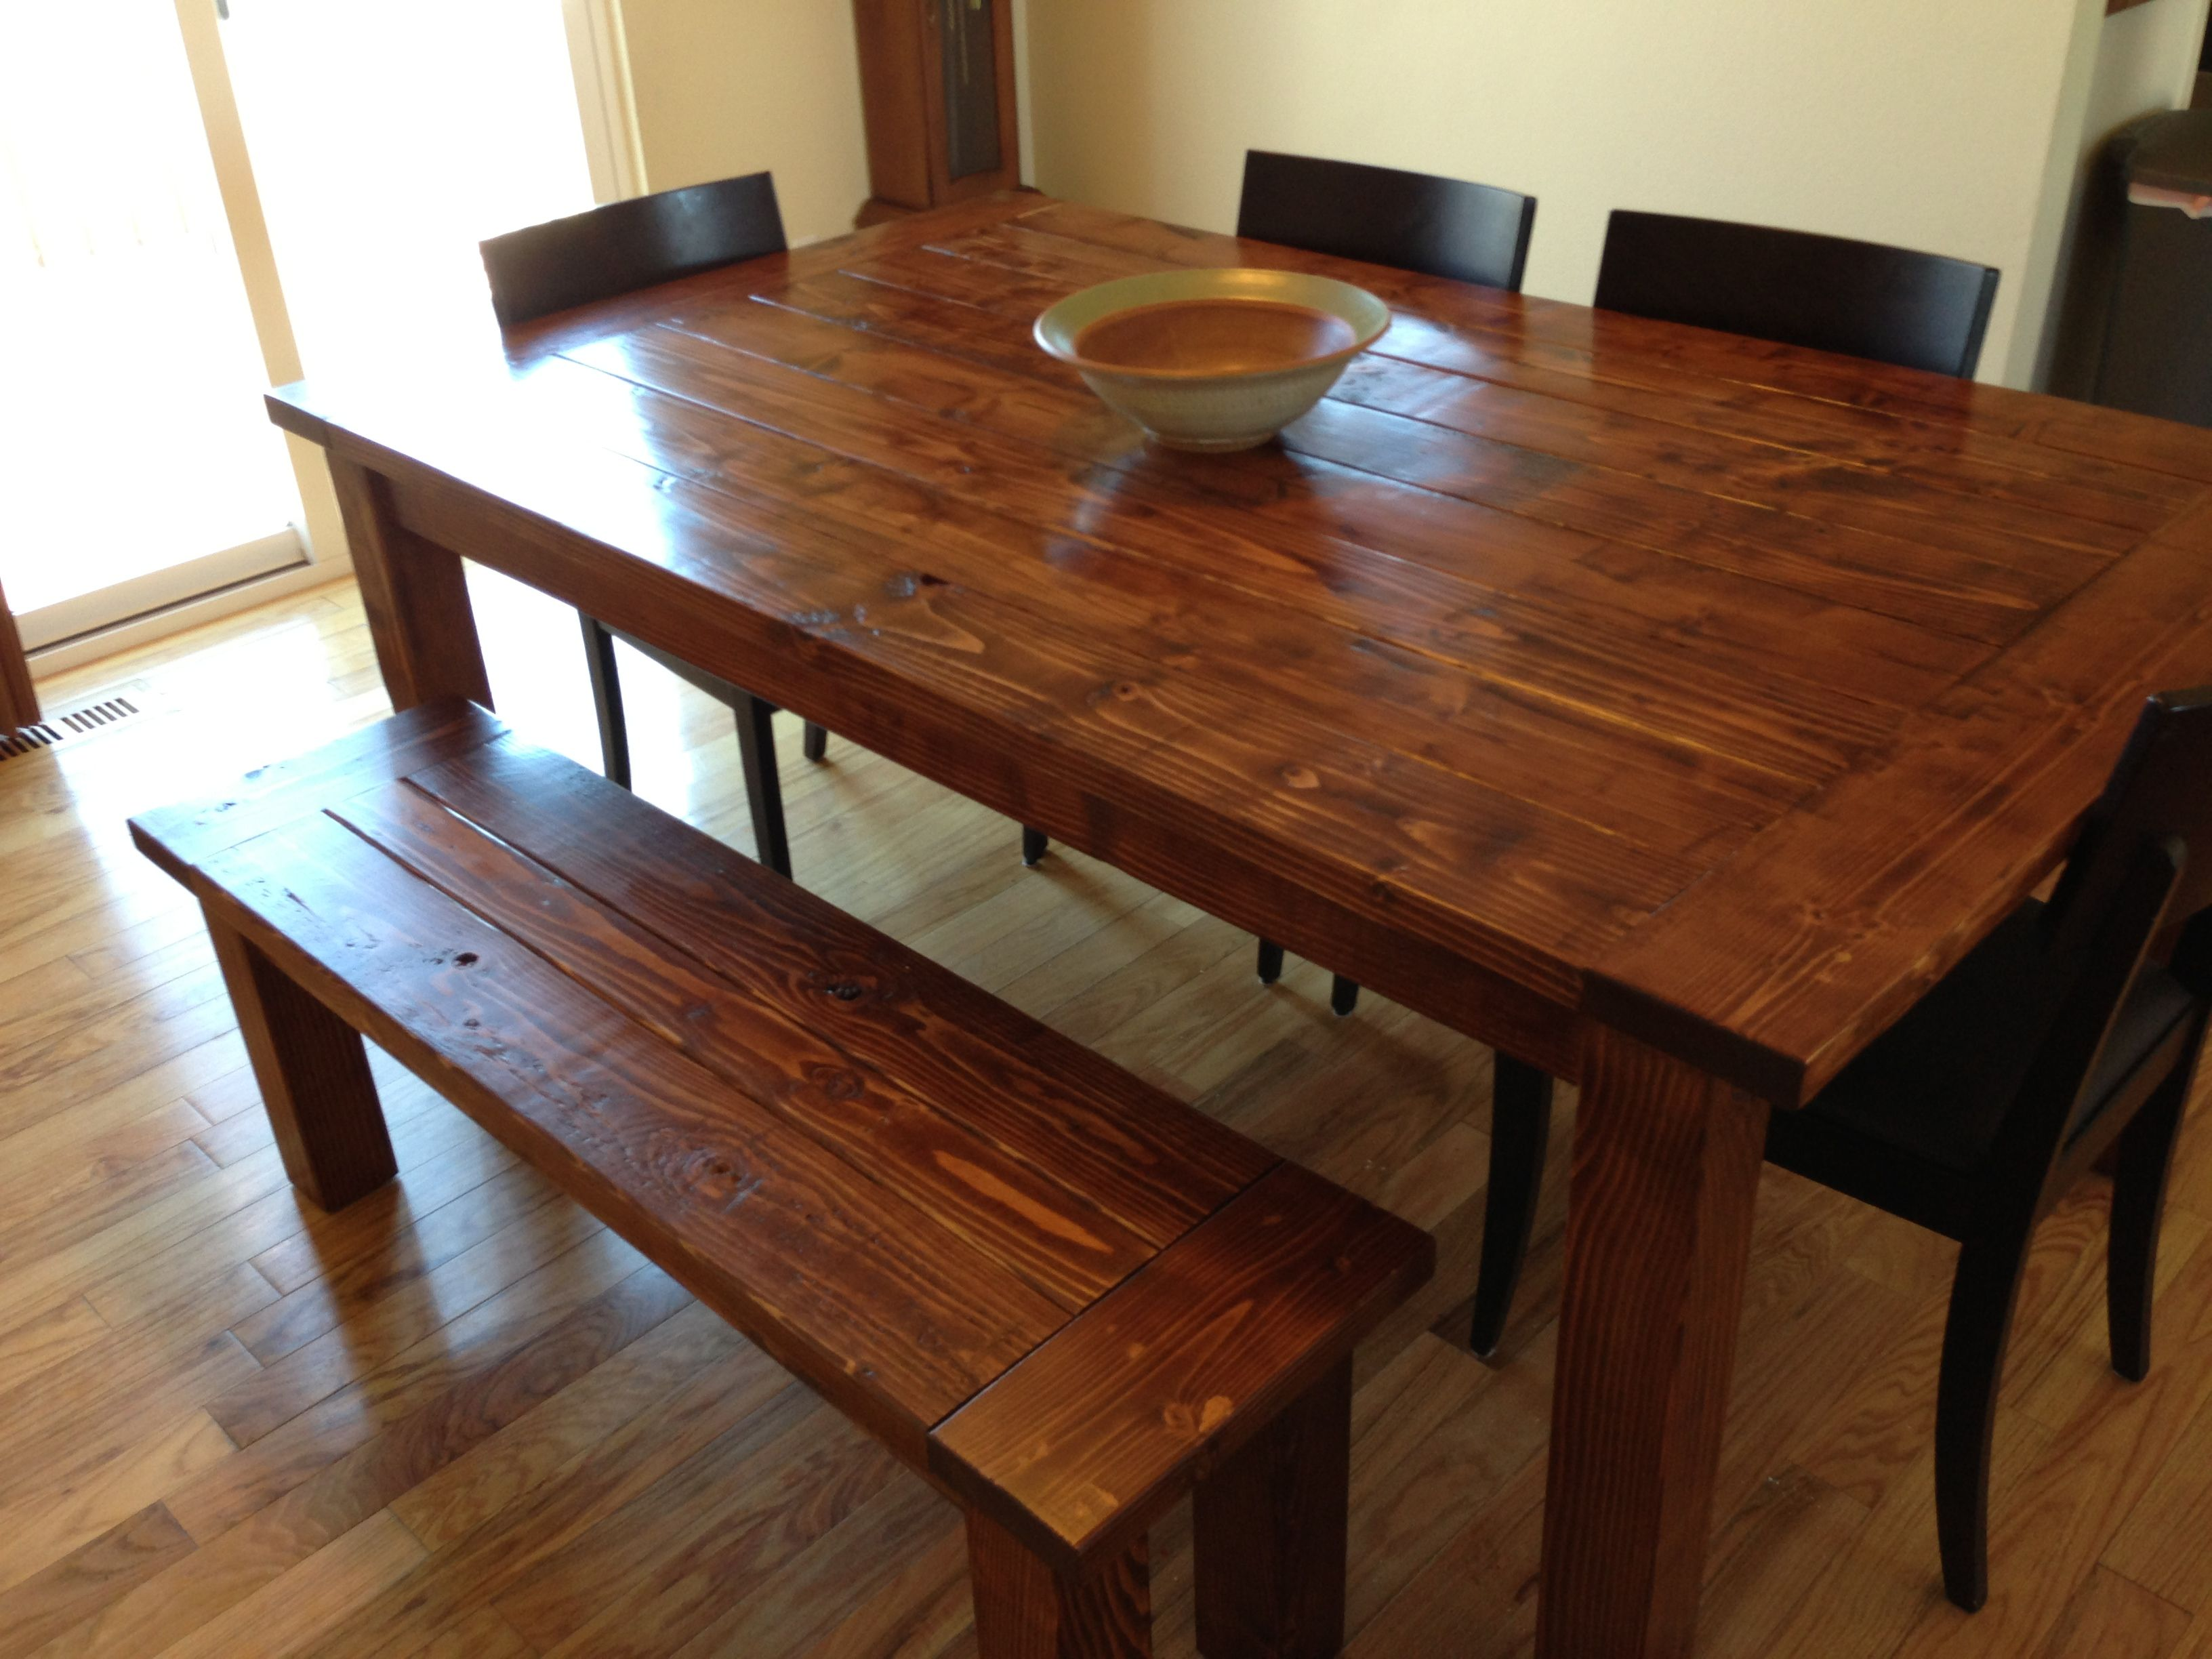 Farmhouse Table And Benchmade From Pine 2X6 2X4 And 4X4's Captivating Wooden Bench For Dining Room Table Design Decoration